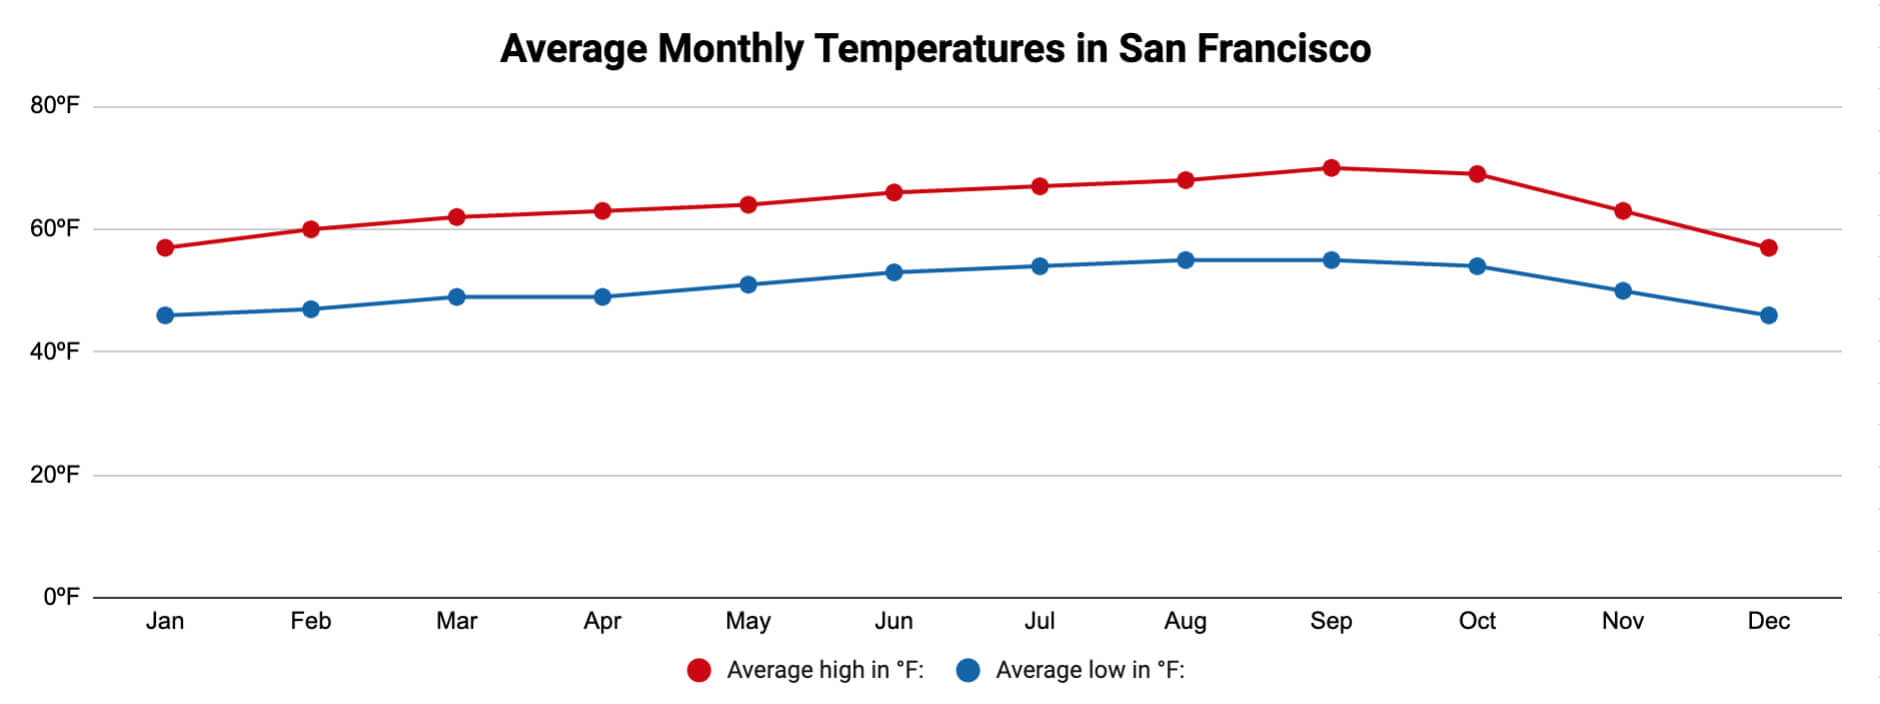 Average monthly temperatures in San Francisco chart